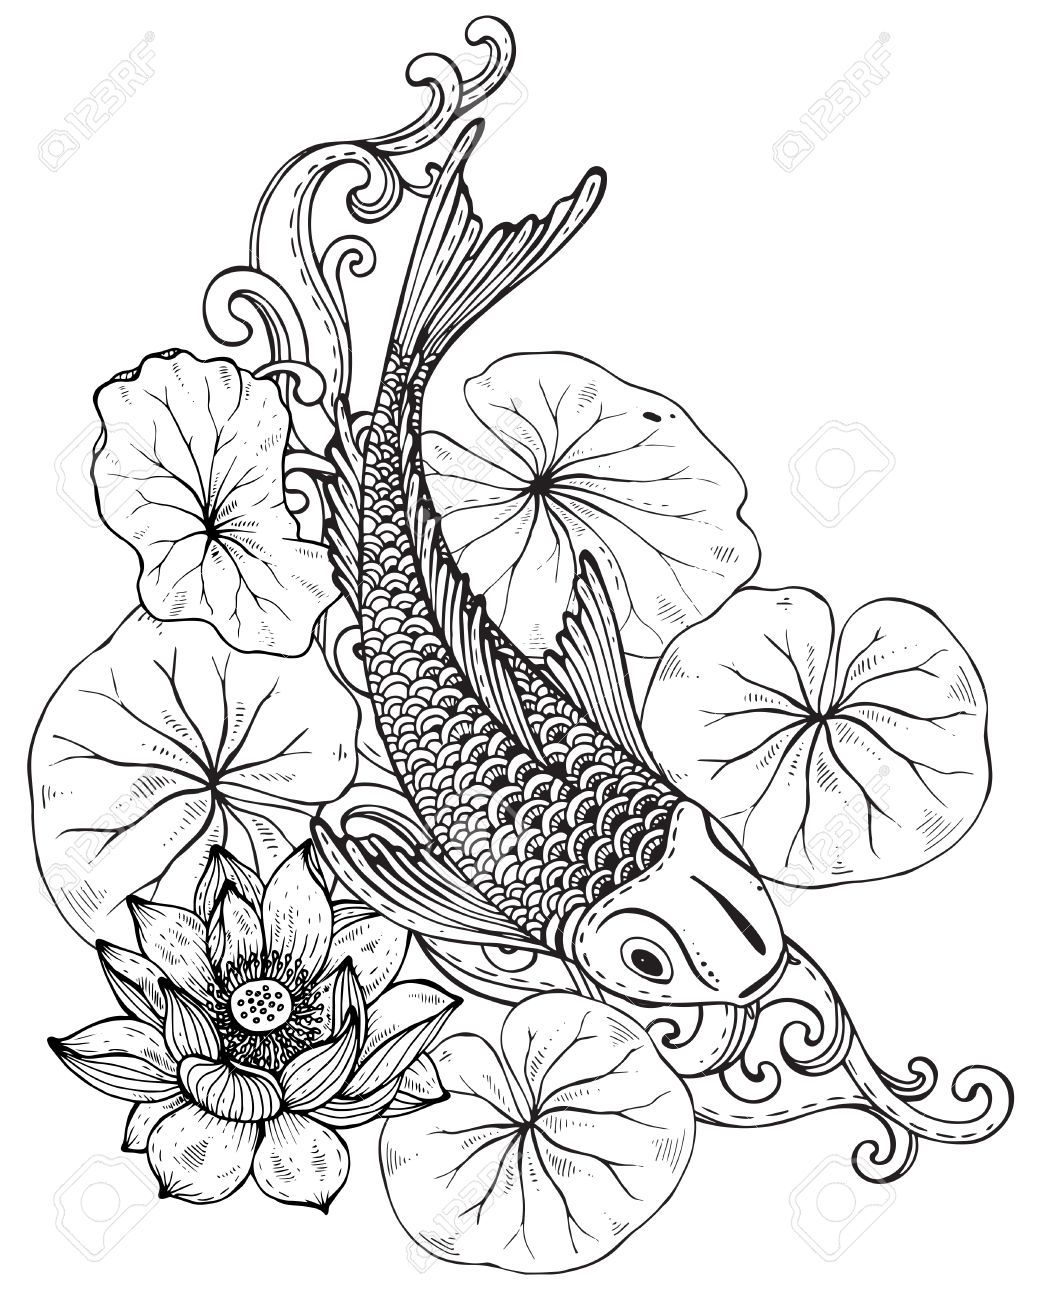 Pin By Rachell Morris On Koi In 2019 Koi Fish Drawing Japanese